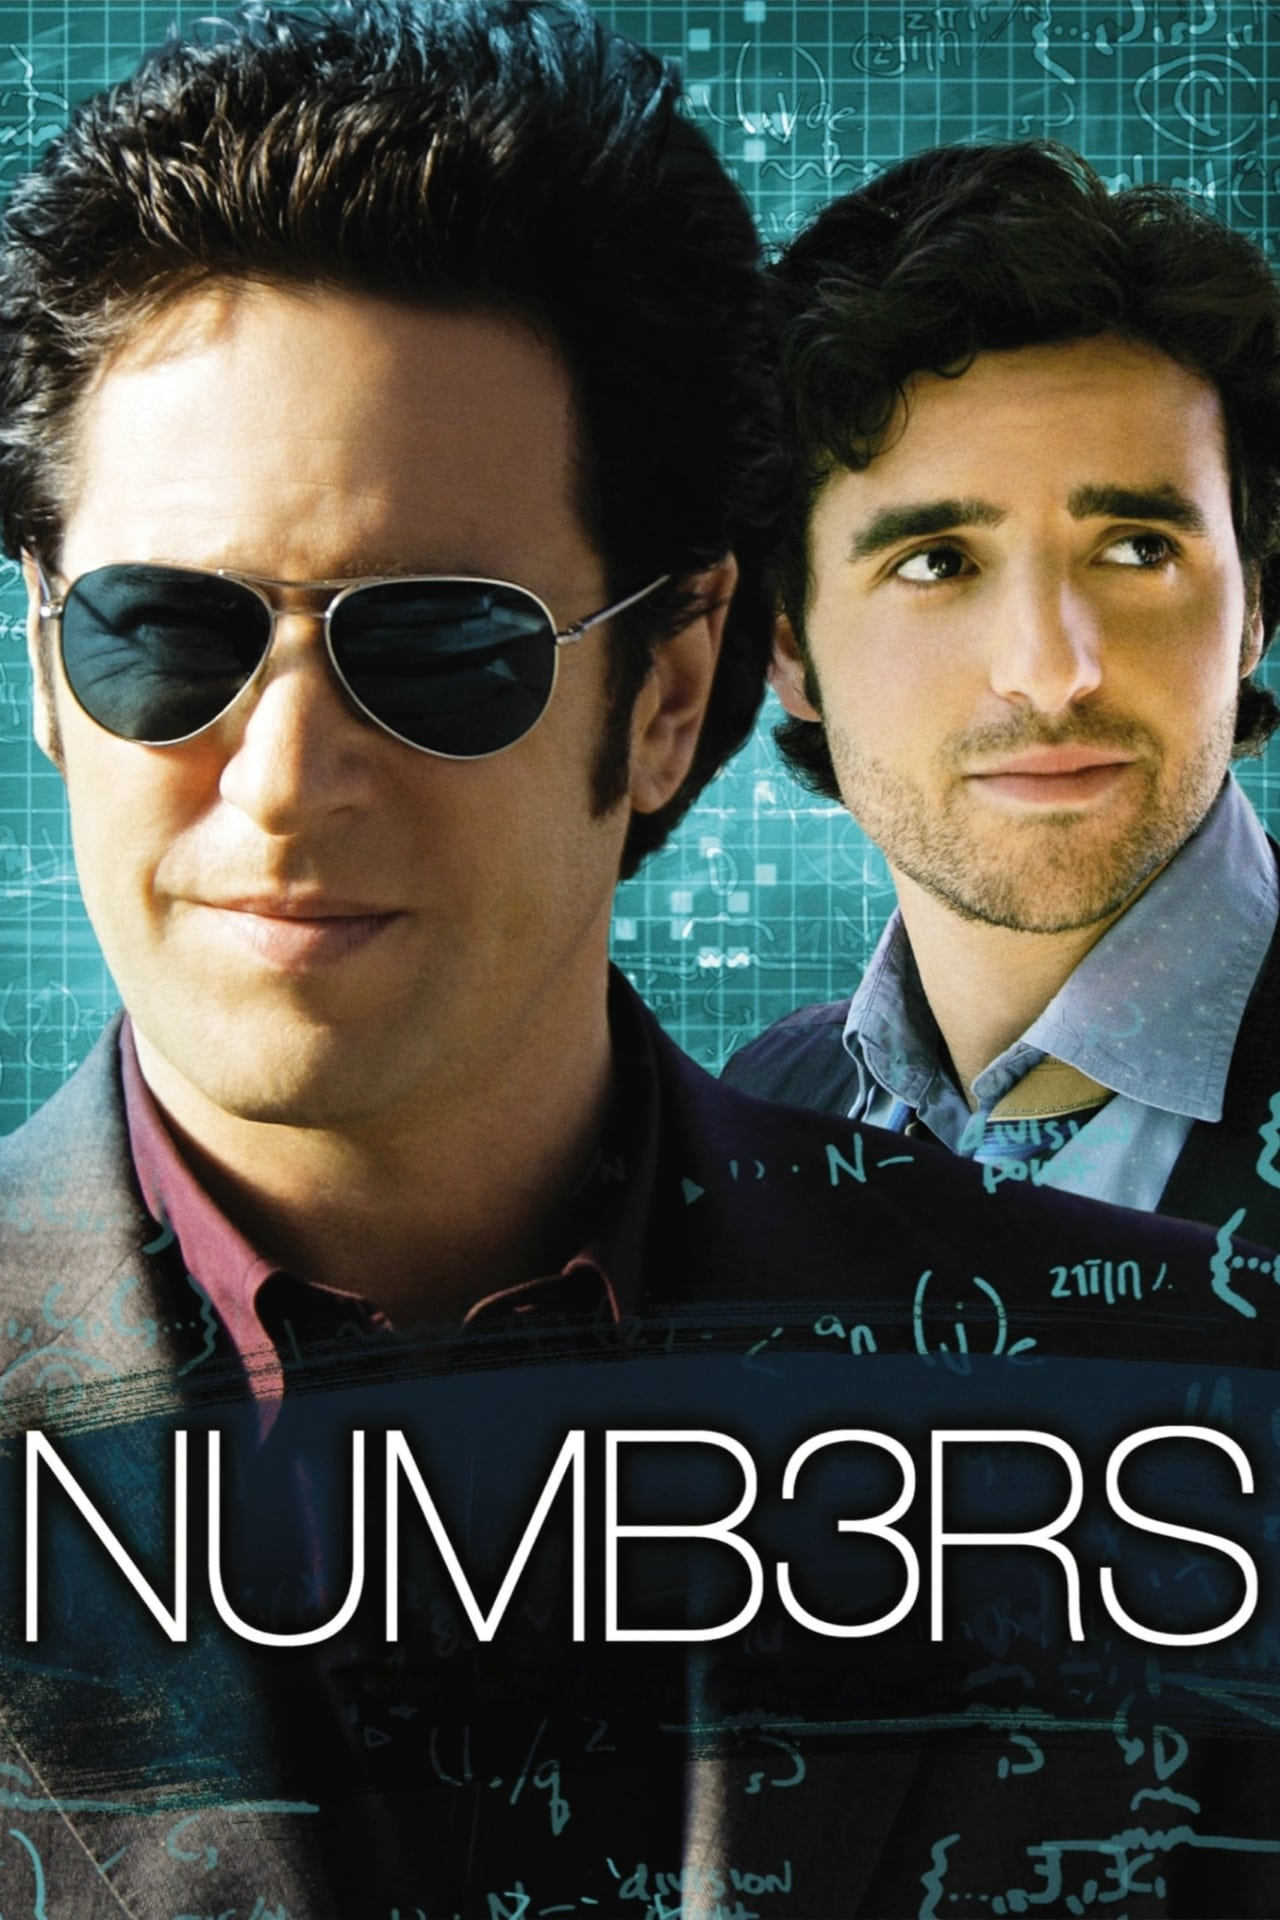 Numb3rs (season 2)